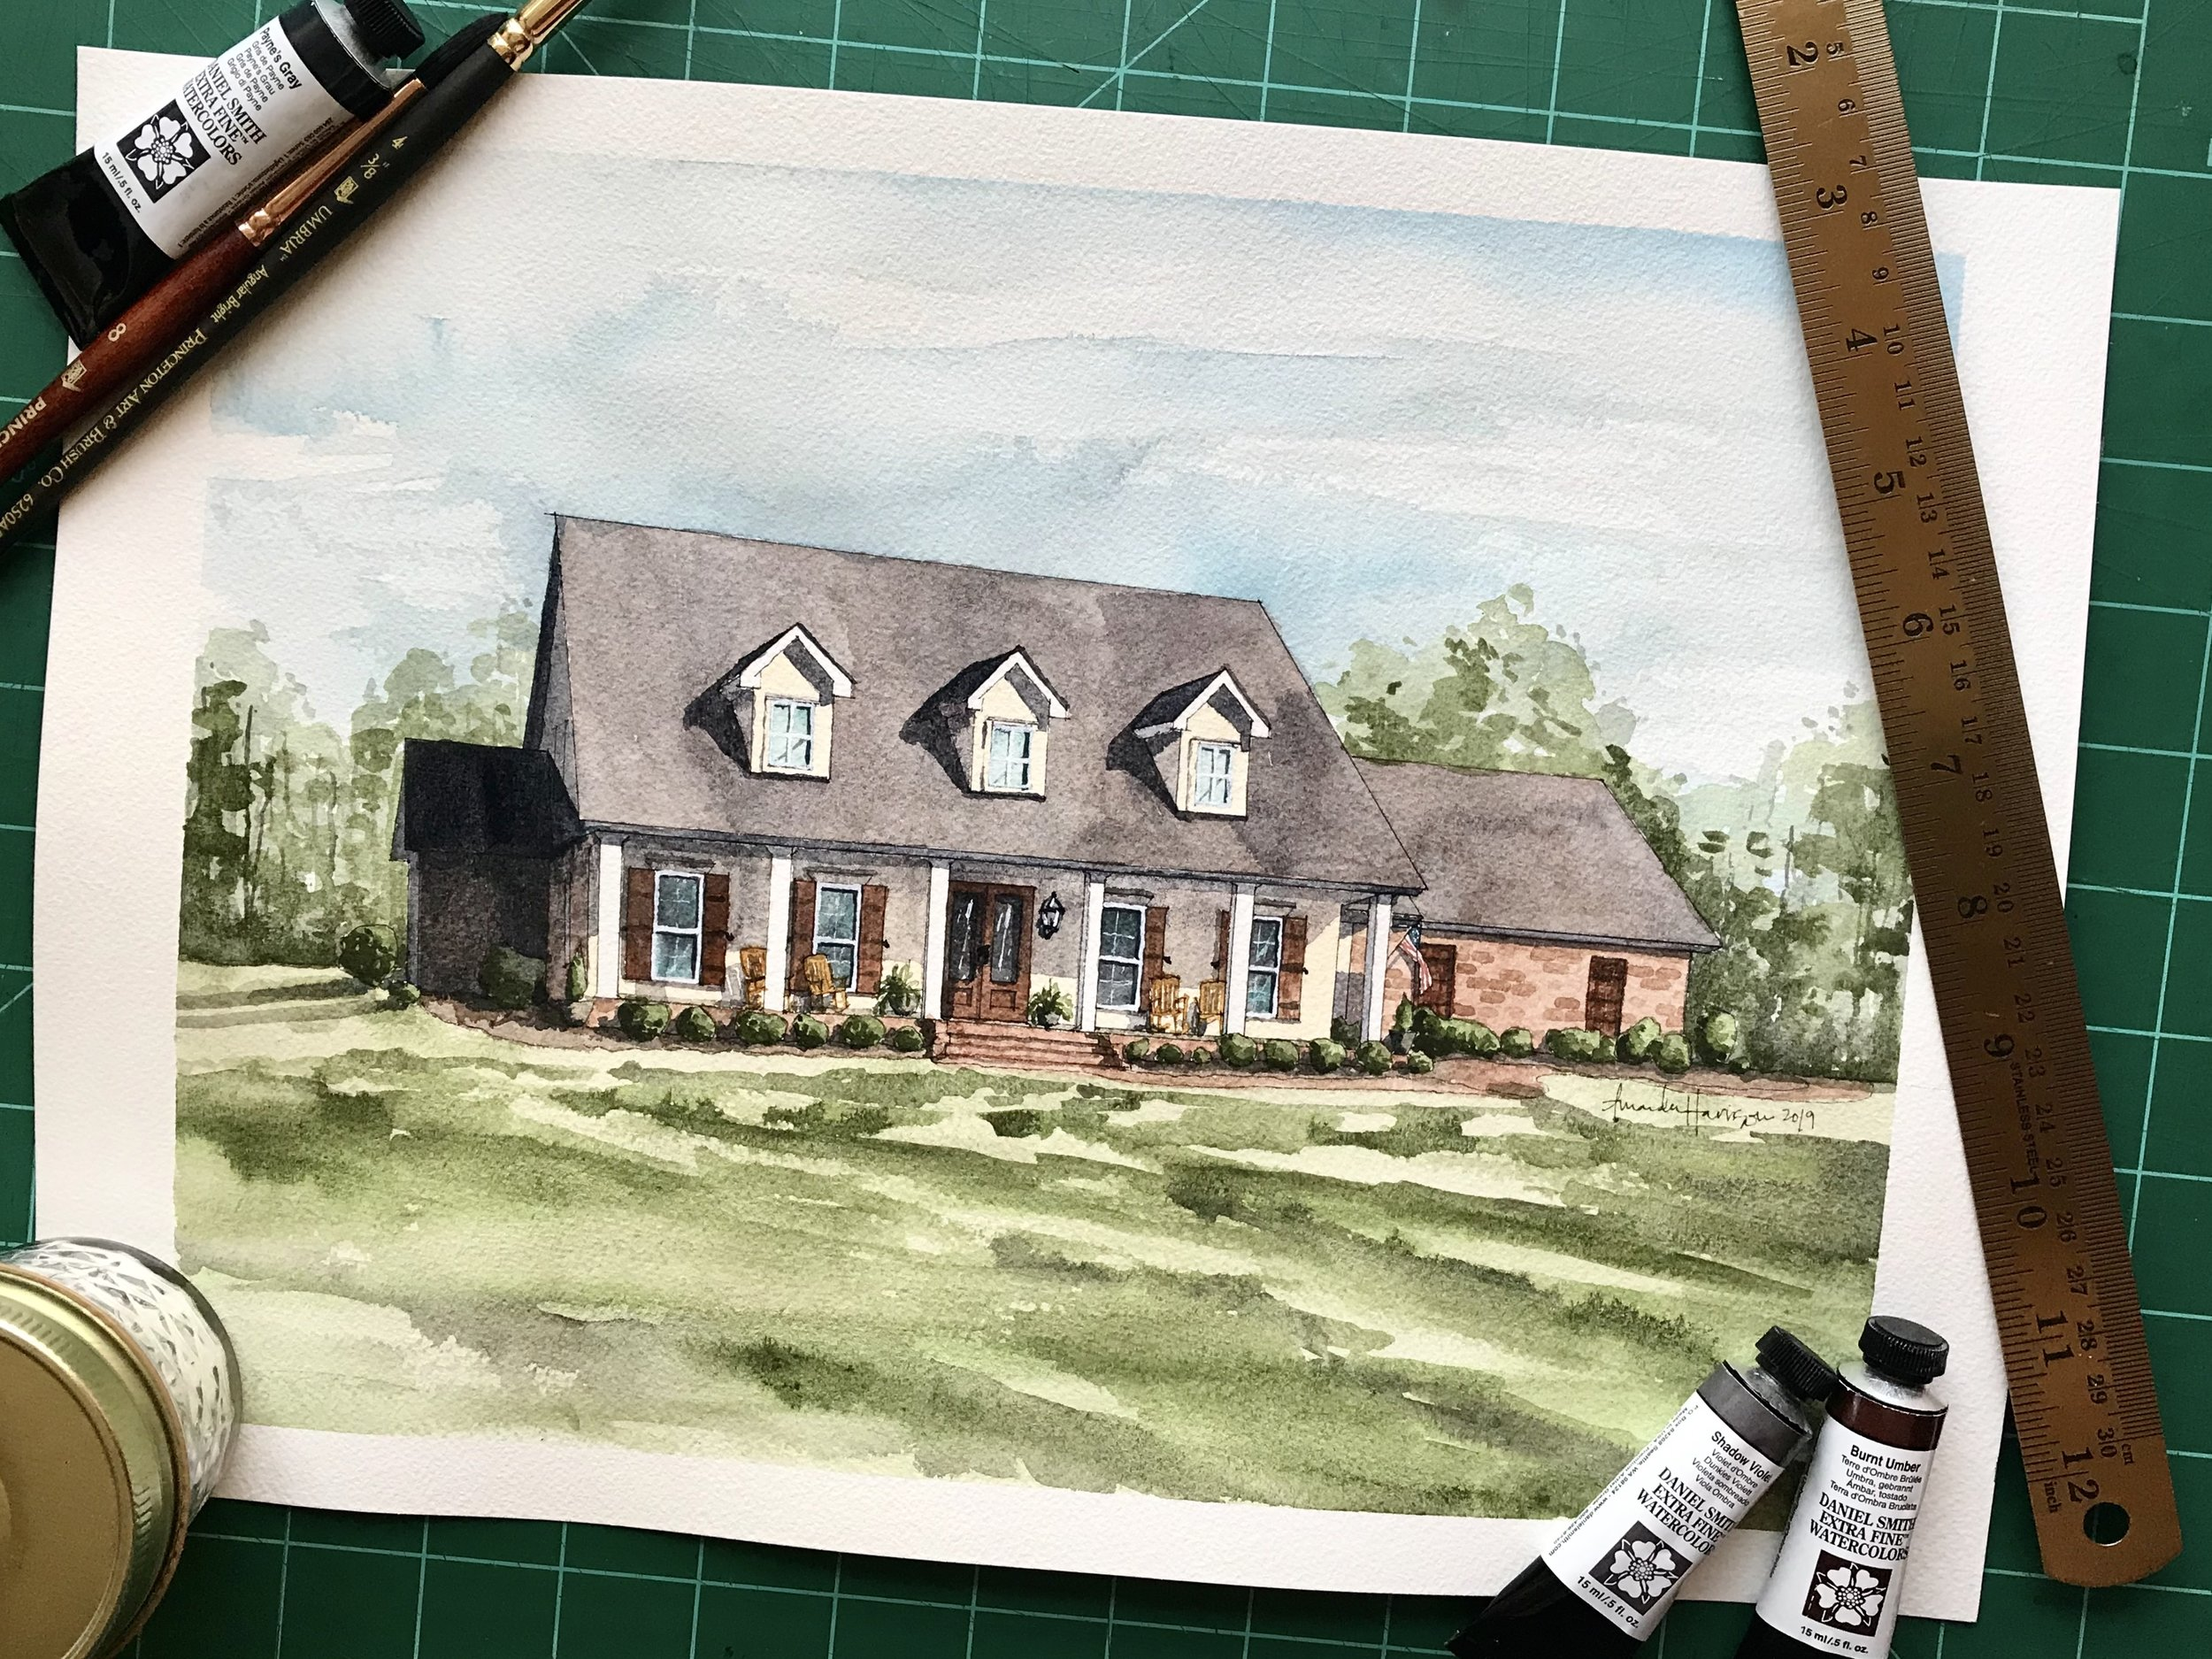 watercolor home portraits - Learn more about commissioning a custom portrait of your house, a beloved childhood home, or a unique gift to someone special. Home Portraits are my passion.